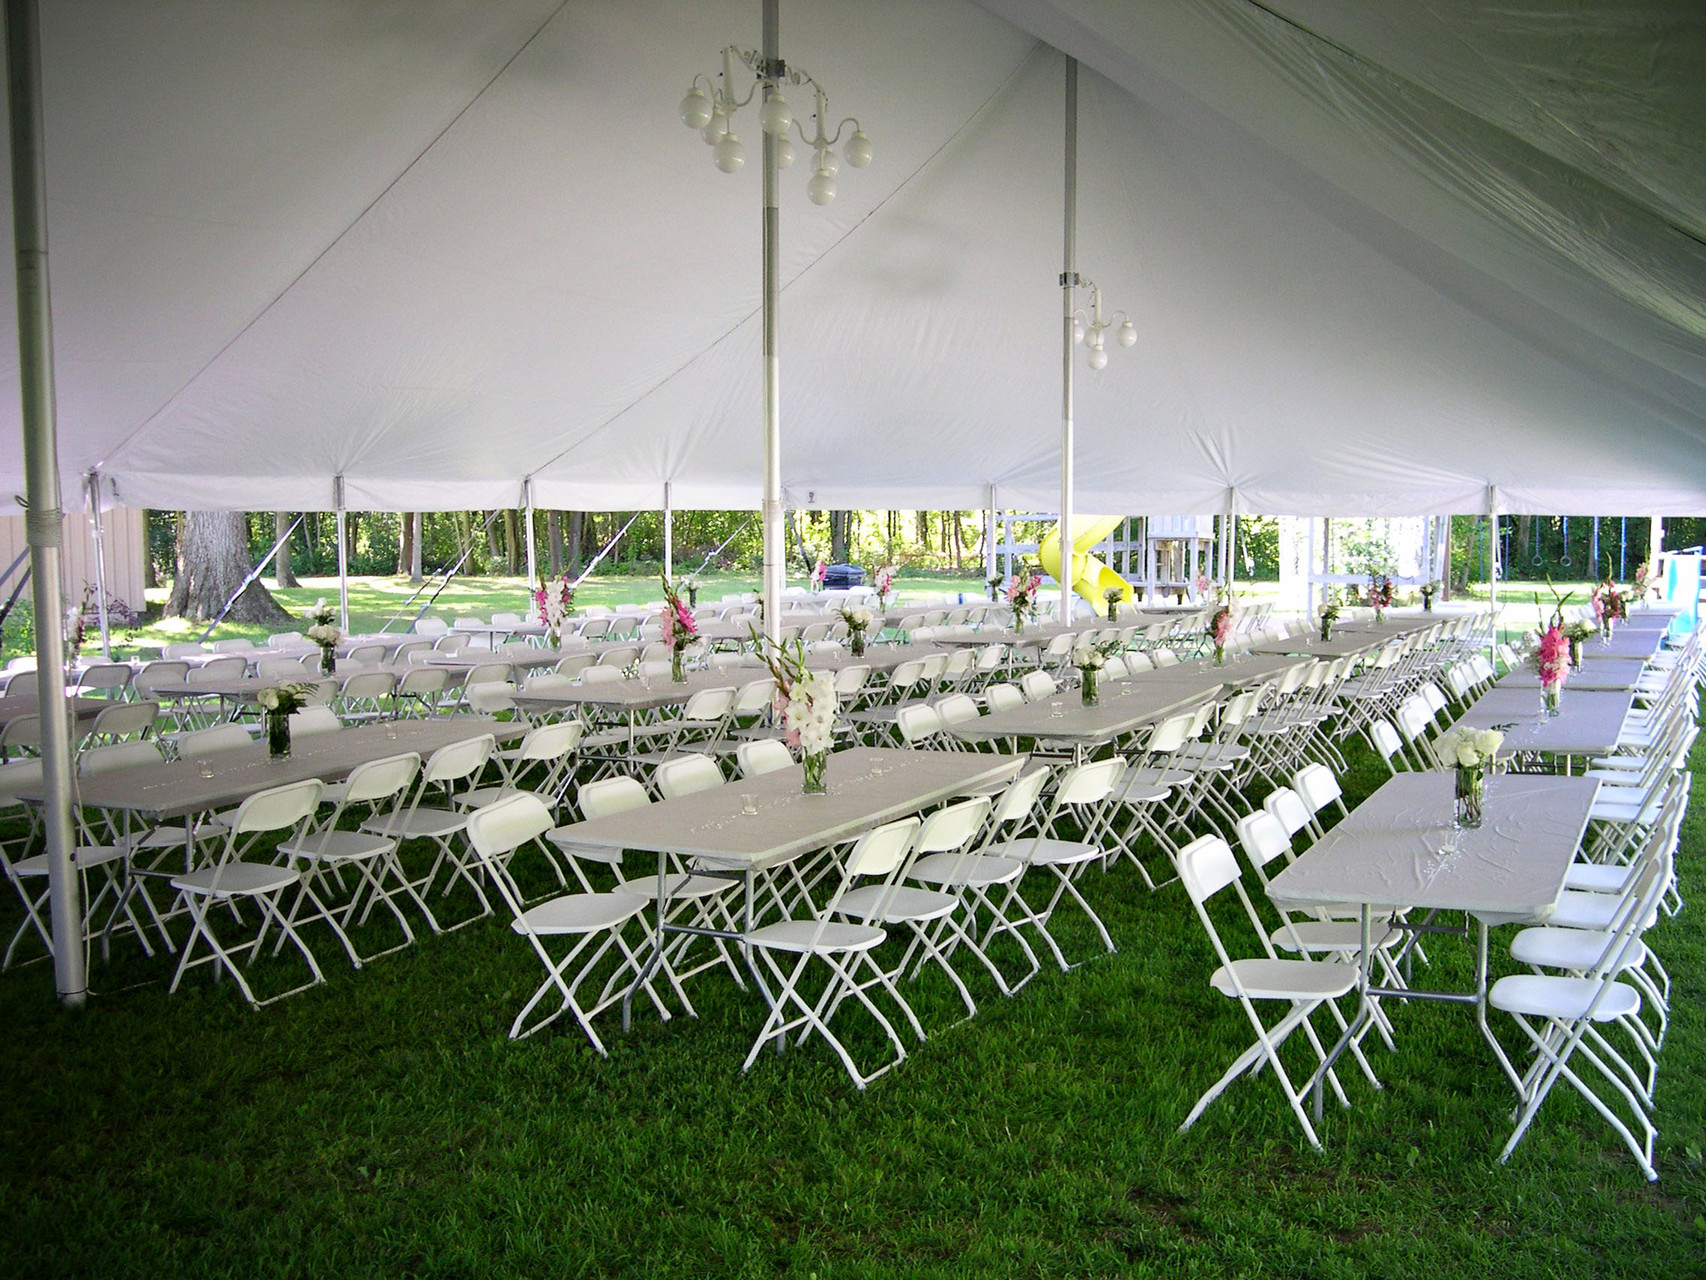 40 x 80 Wedding tent for 200 people